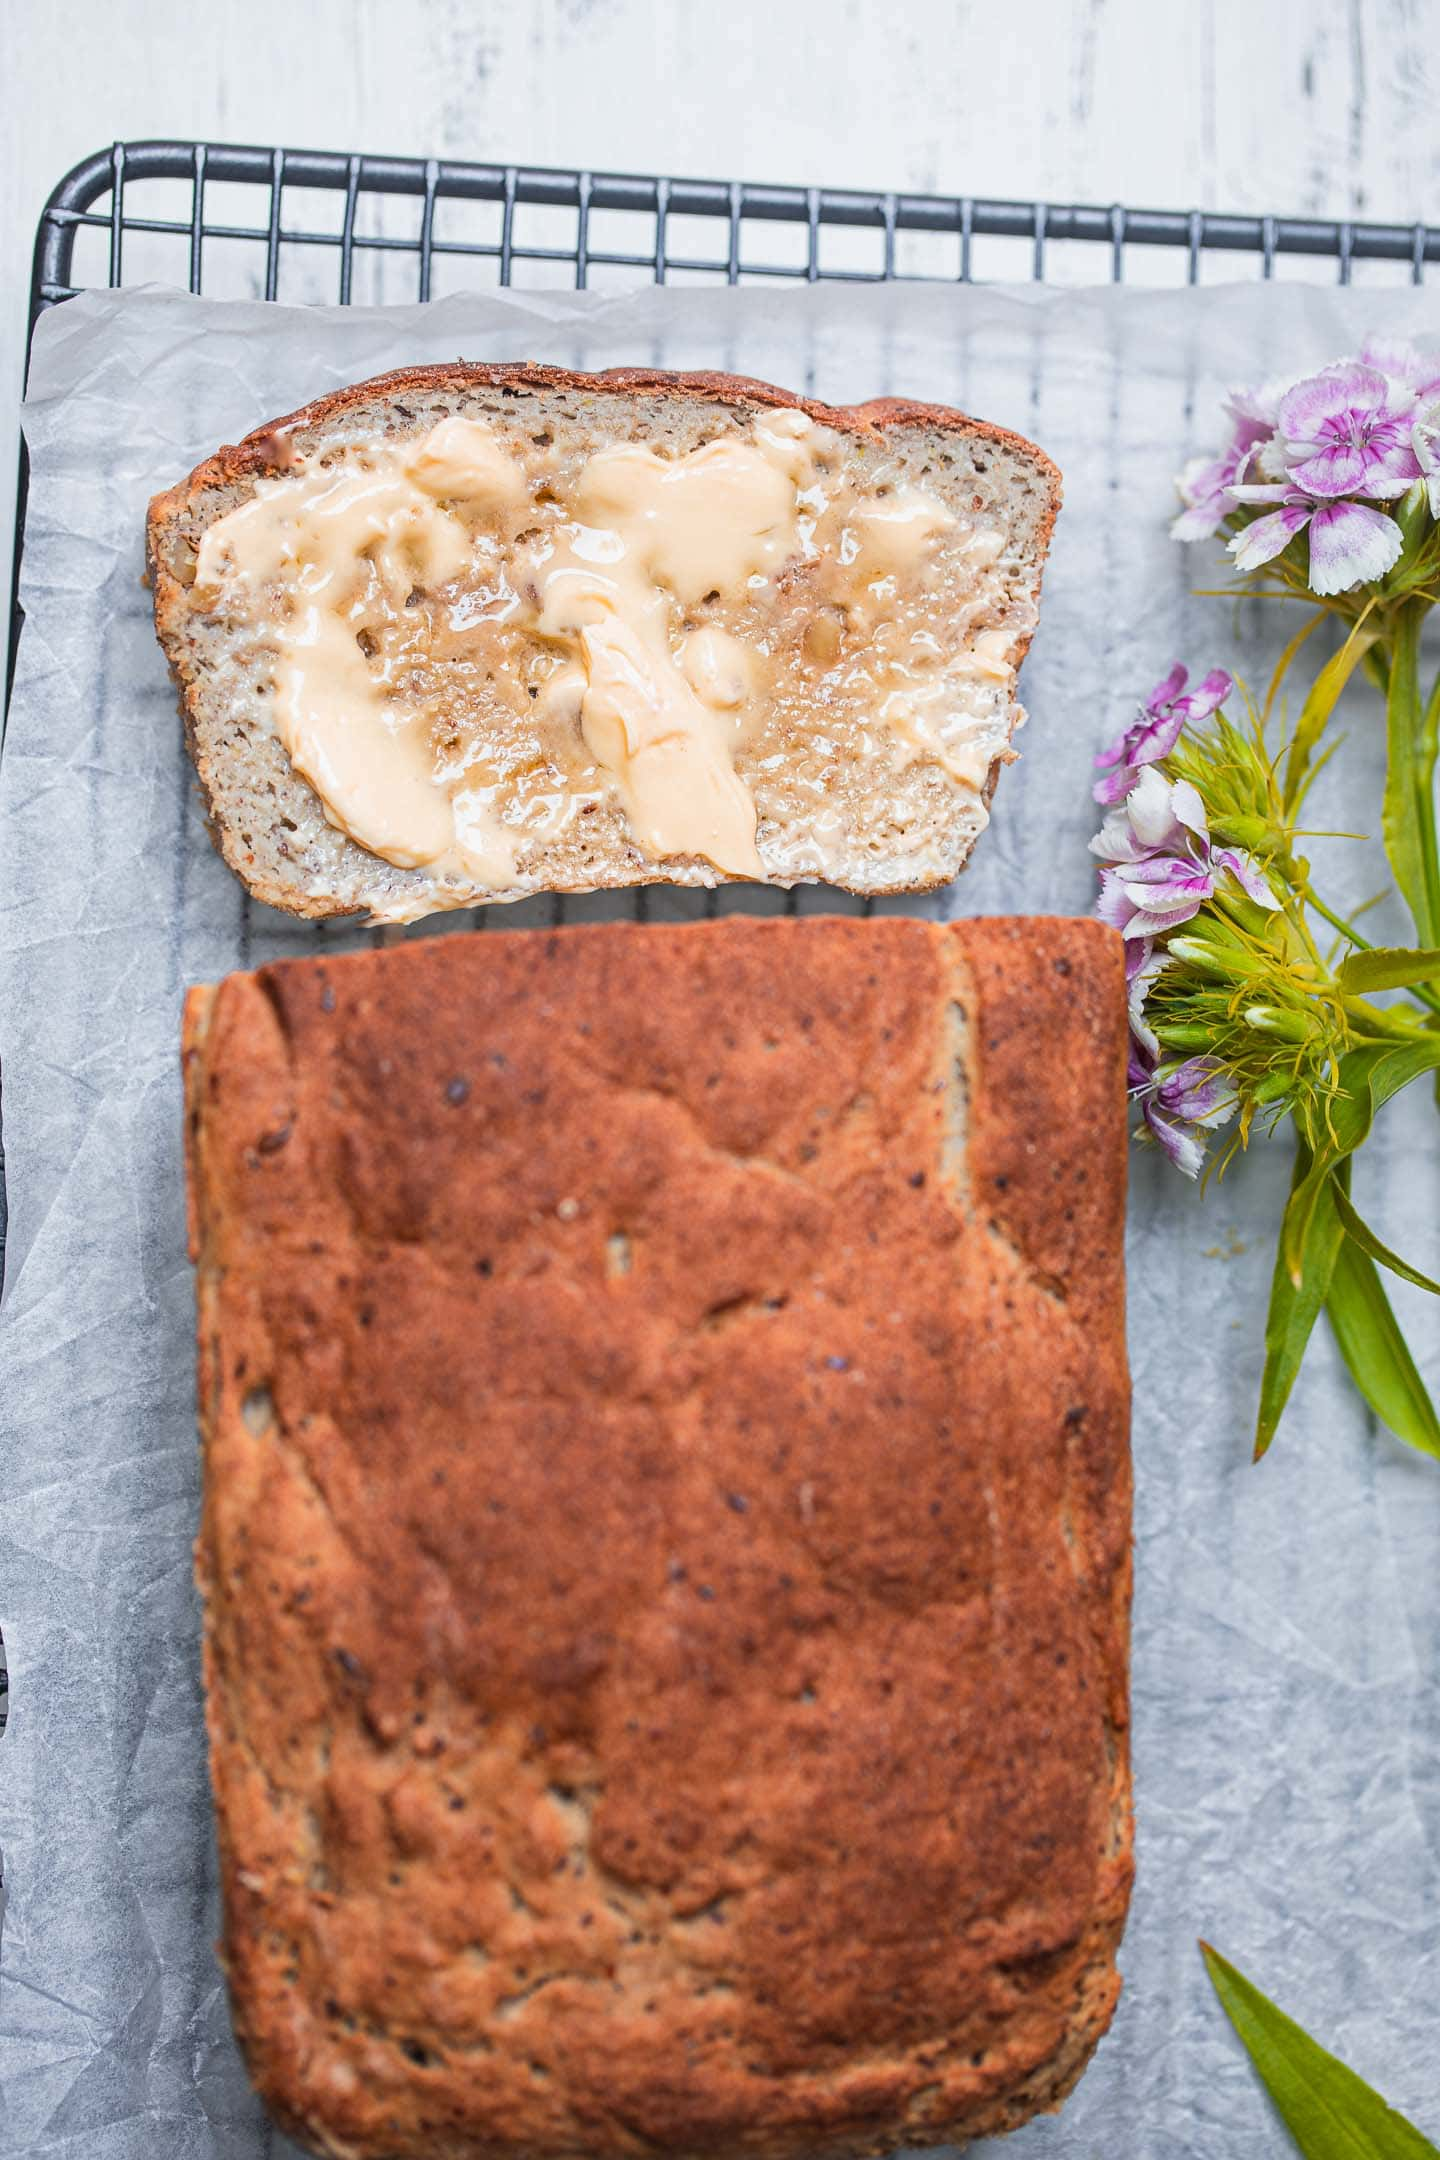 Sliced vegan bread loaf with vegan butter